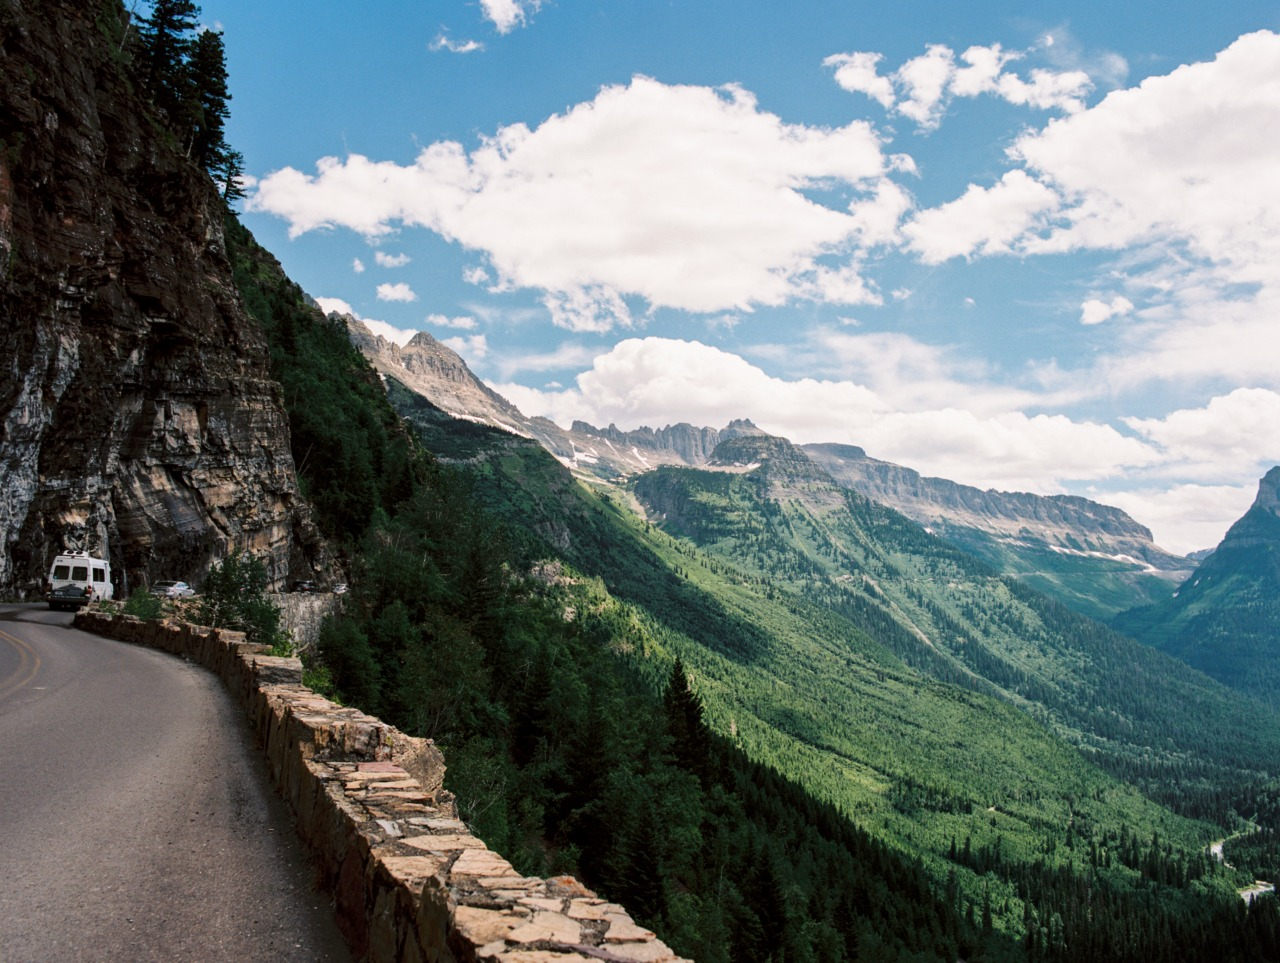 taylormccutchan :     Going to the sun road - Glacier National Park   Substance of the west 2013   Pentax 645, 45mm, Fuji pro 400h